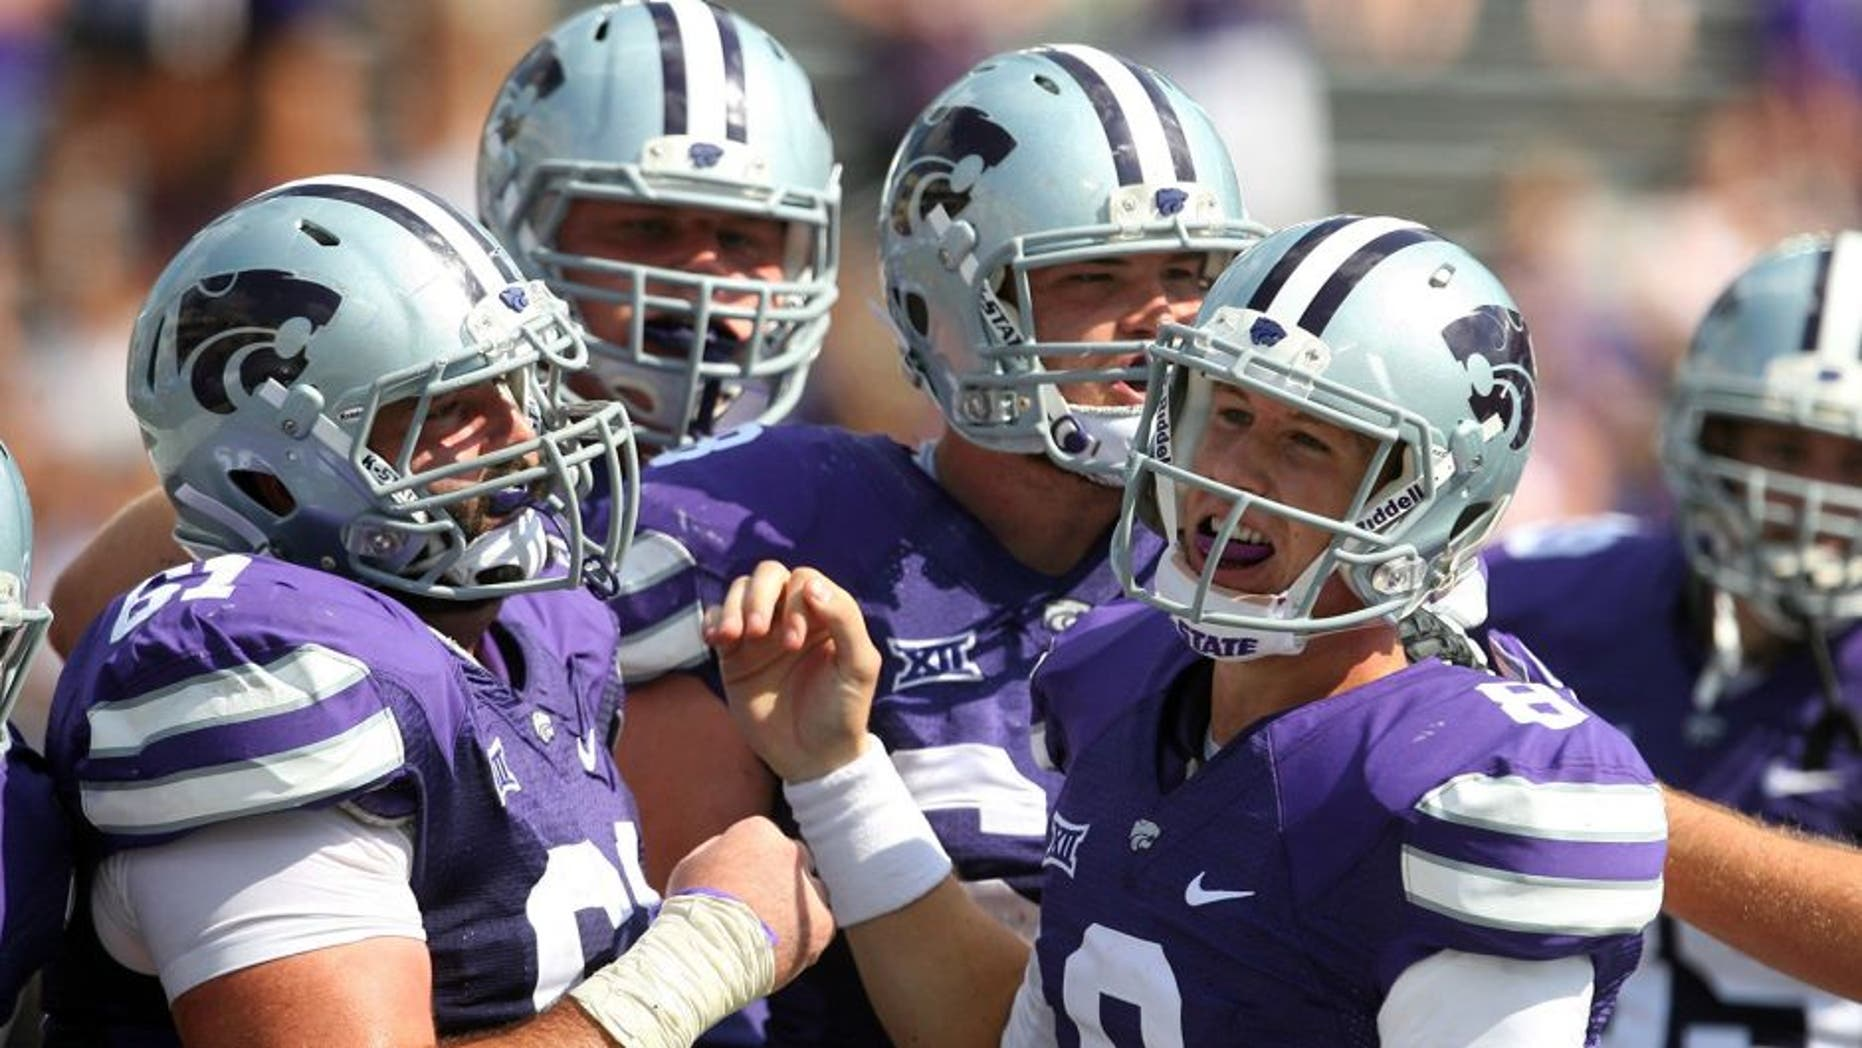 Sep 27, 2014; Manhattan, KS, USA; Kansas State Wildcats quarterback Joe Hubener (8) is congratulated by teammates following a touchdown in a 58-28 win against the UTEP Miners at Bill Snyder Family Stadium. Mandatory Credit: Scott Sewell-USA TODAY Sports